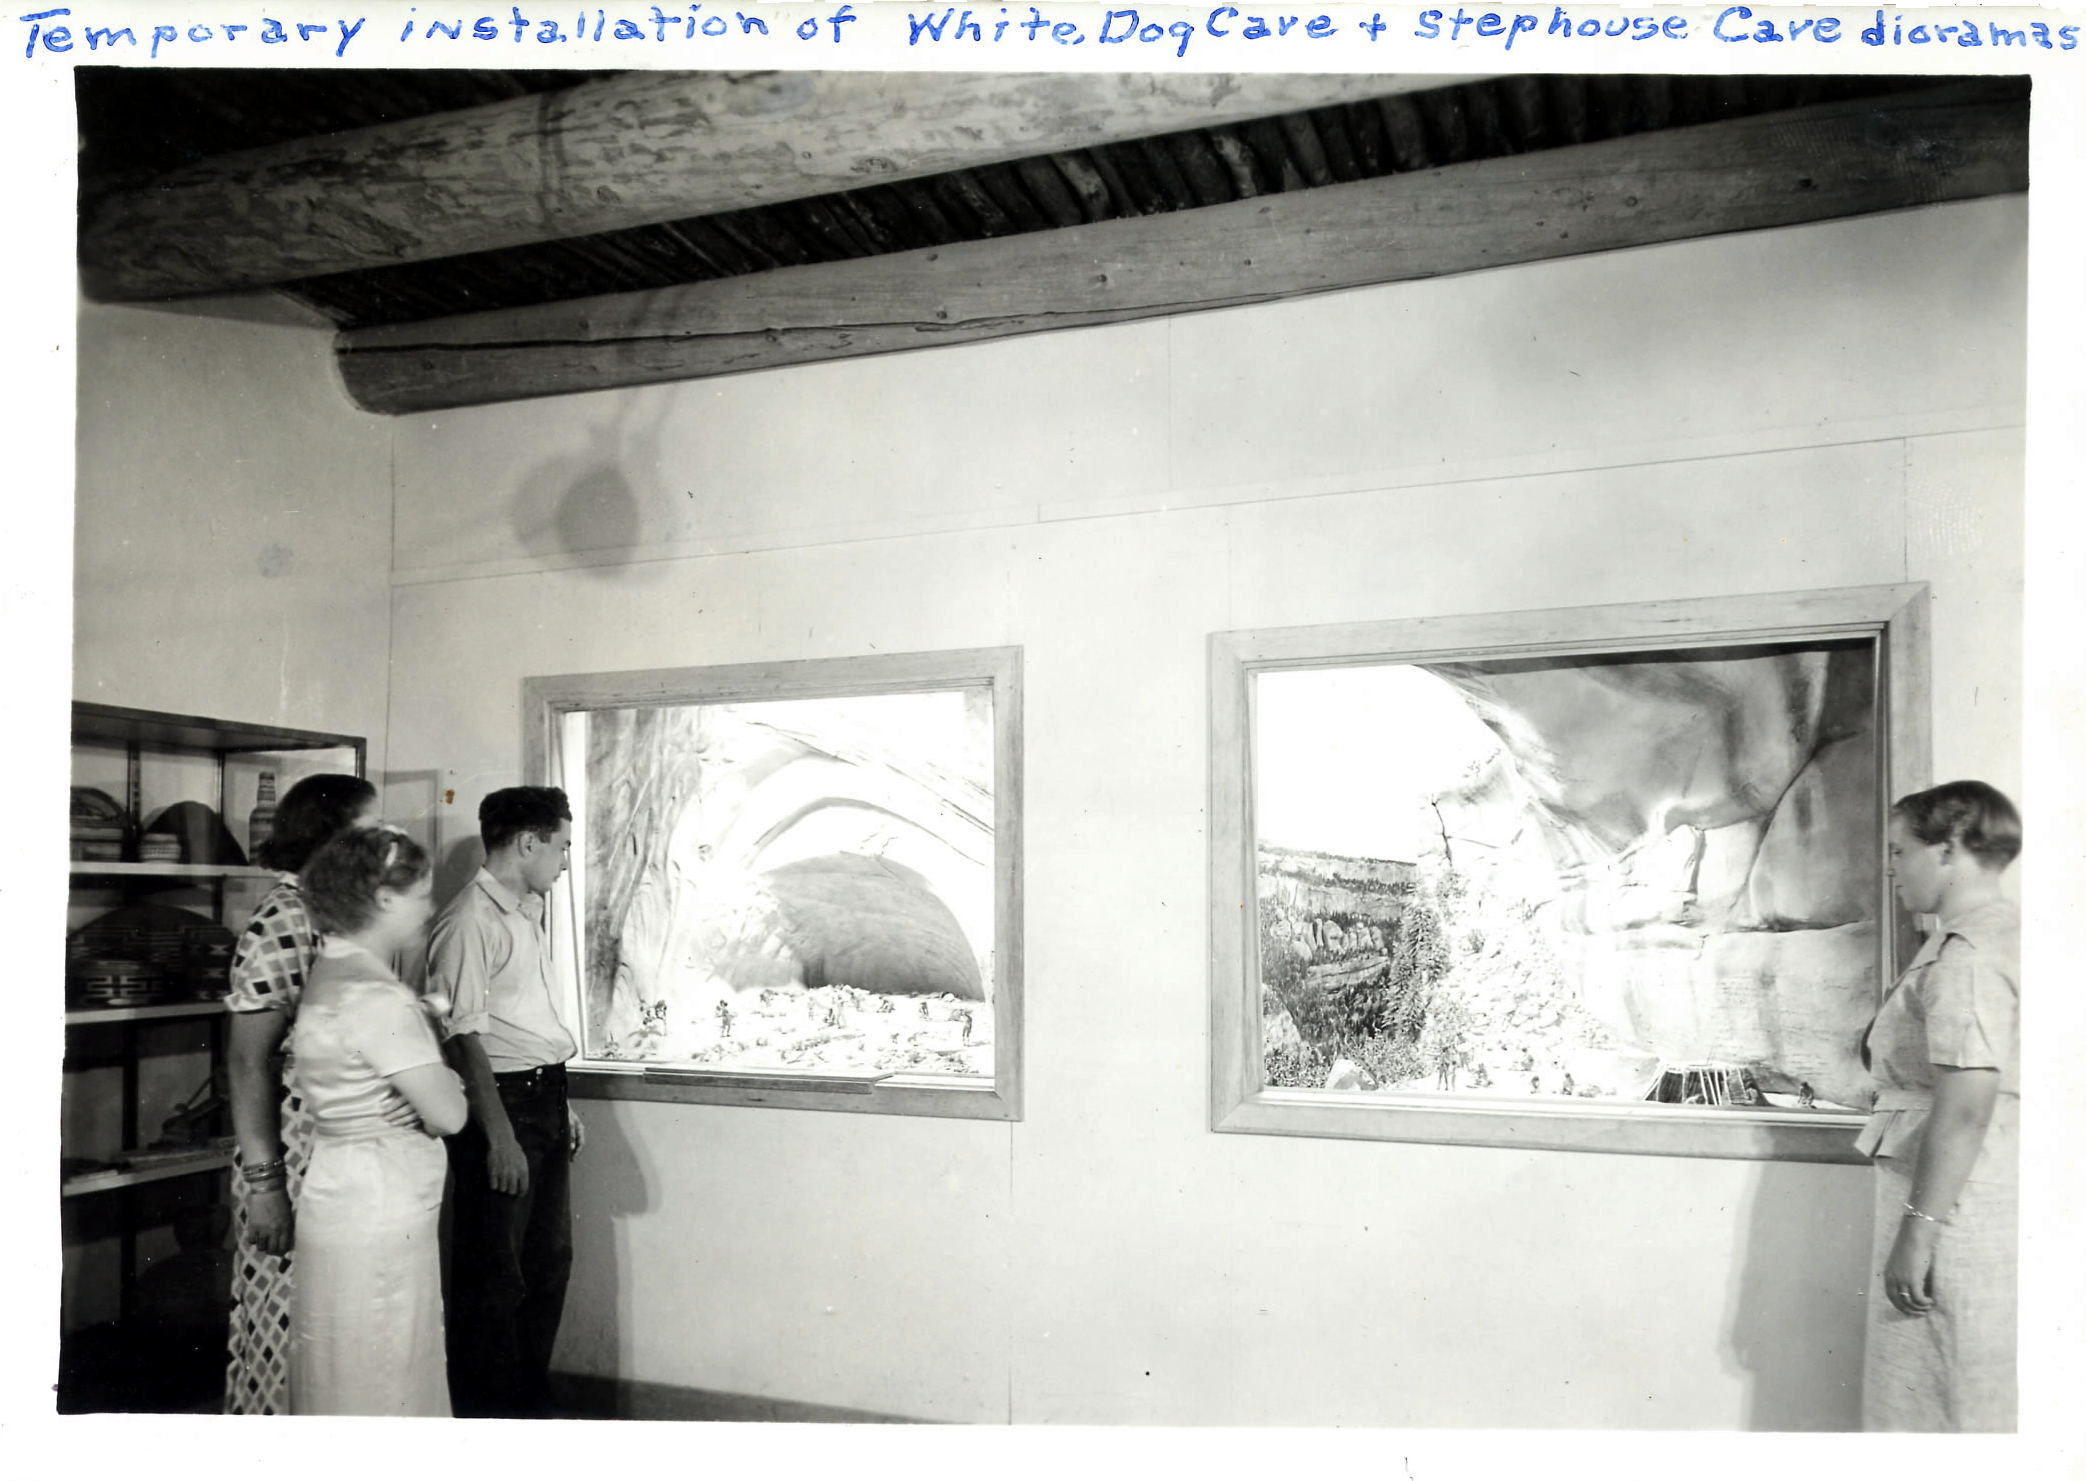 Temporary installation of White Dog Cave and Step House dioramas at Mesa Verde National Park; circa 1930s. NPS Photo.